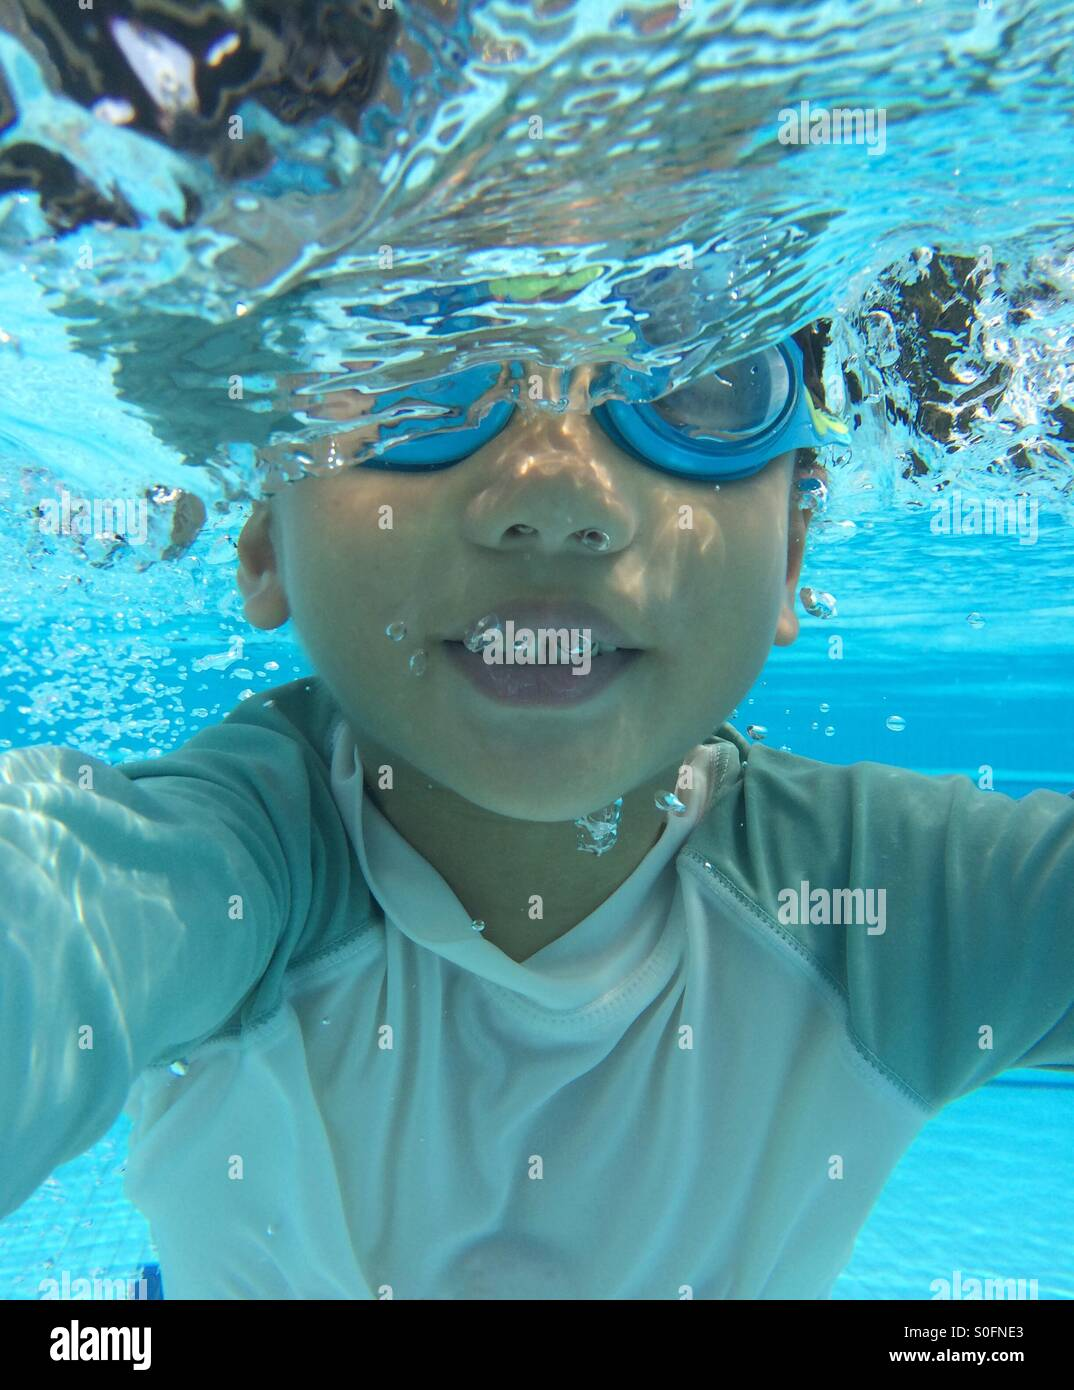 Underwater image of a young 5 year old Asian boy with half face submerged in water Stock Photo